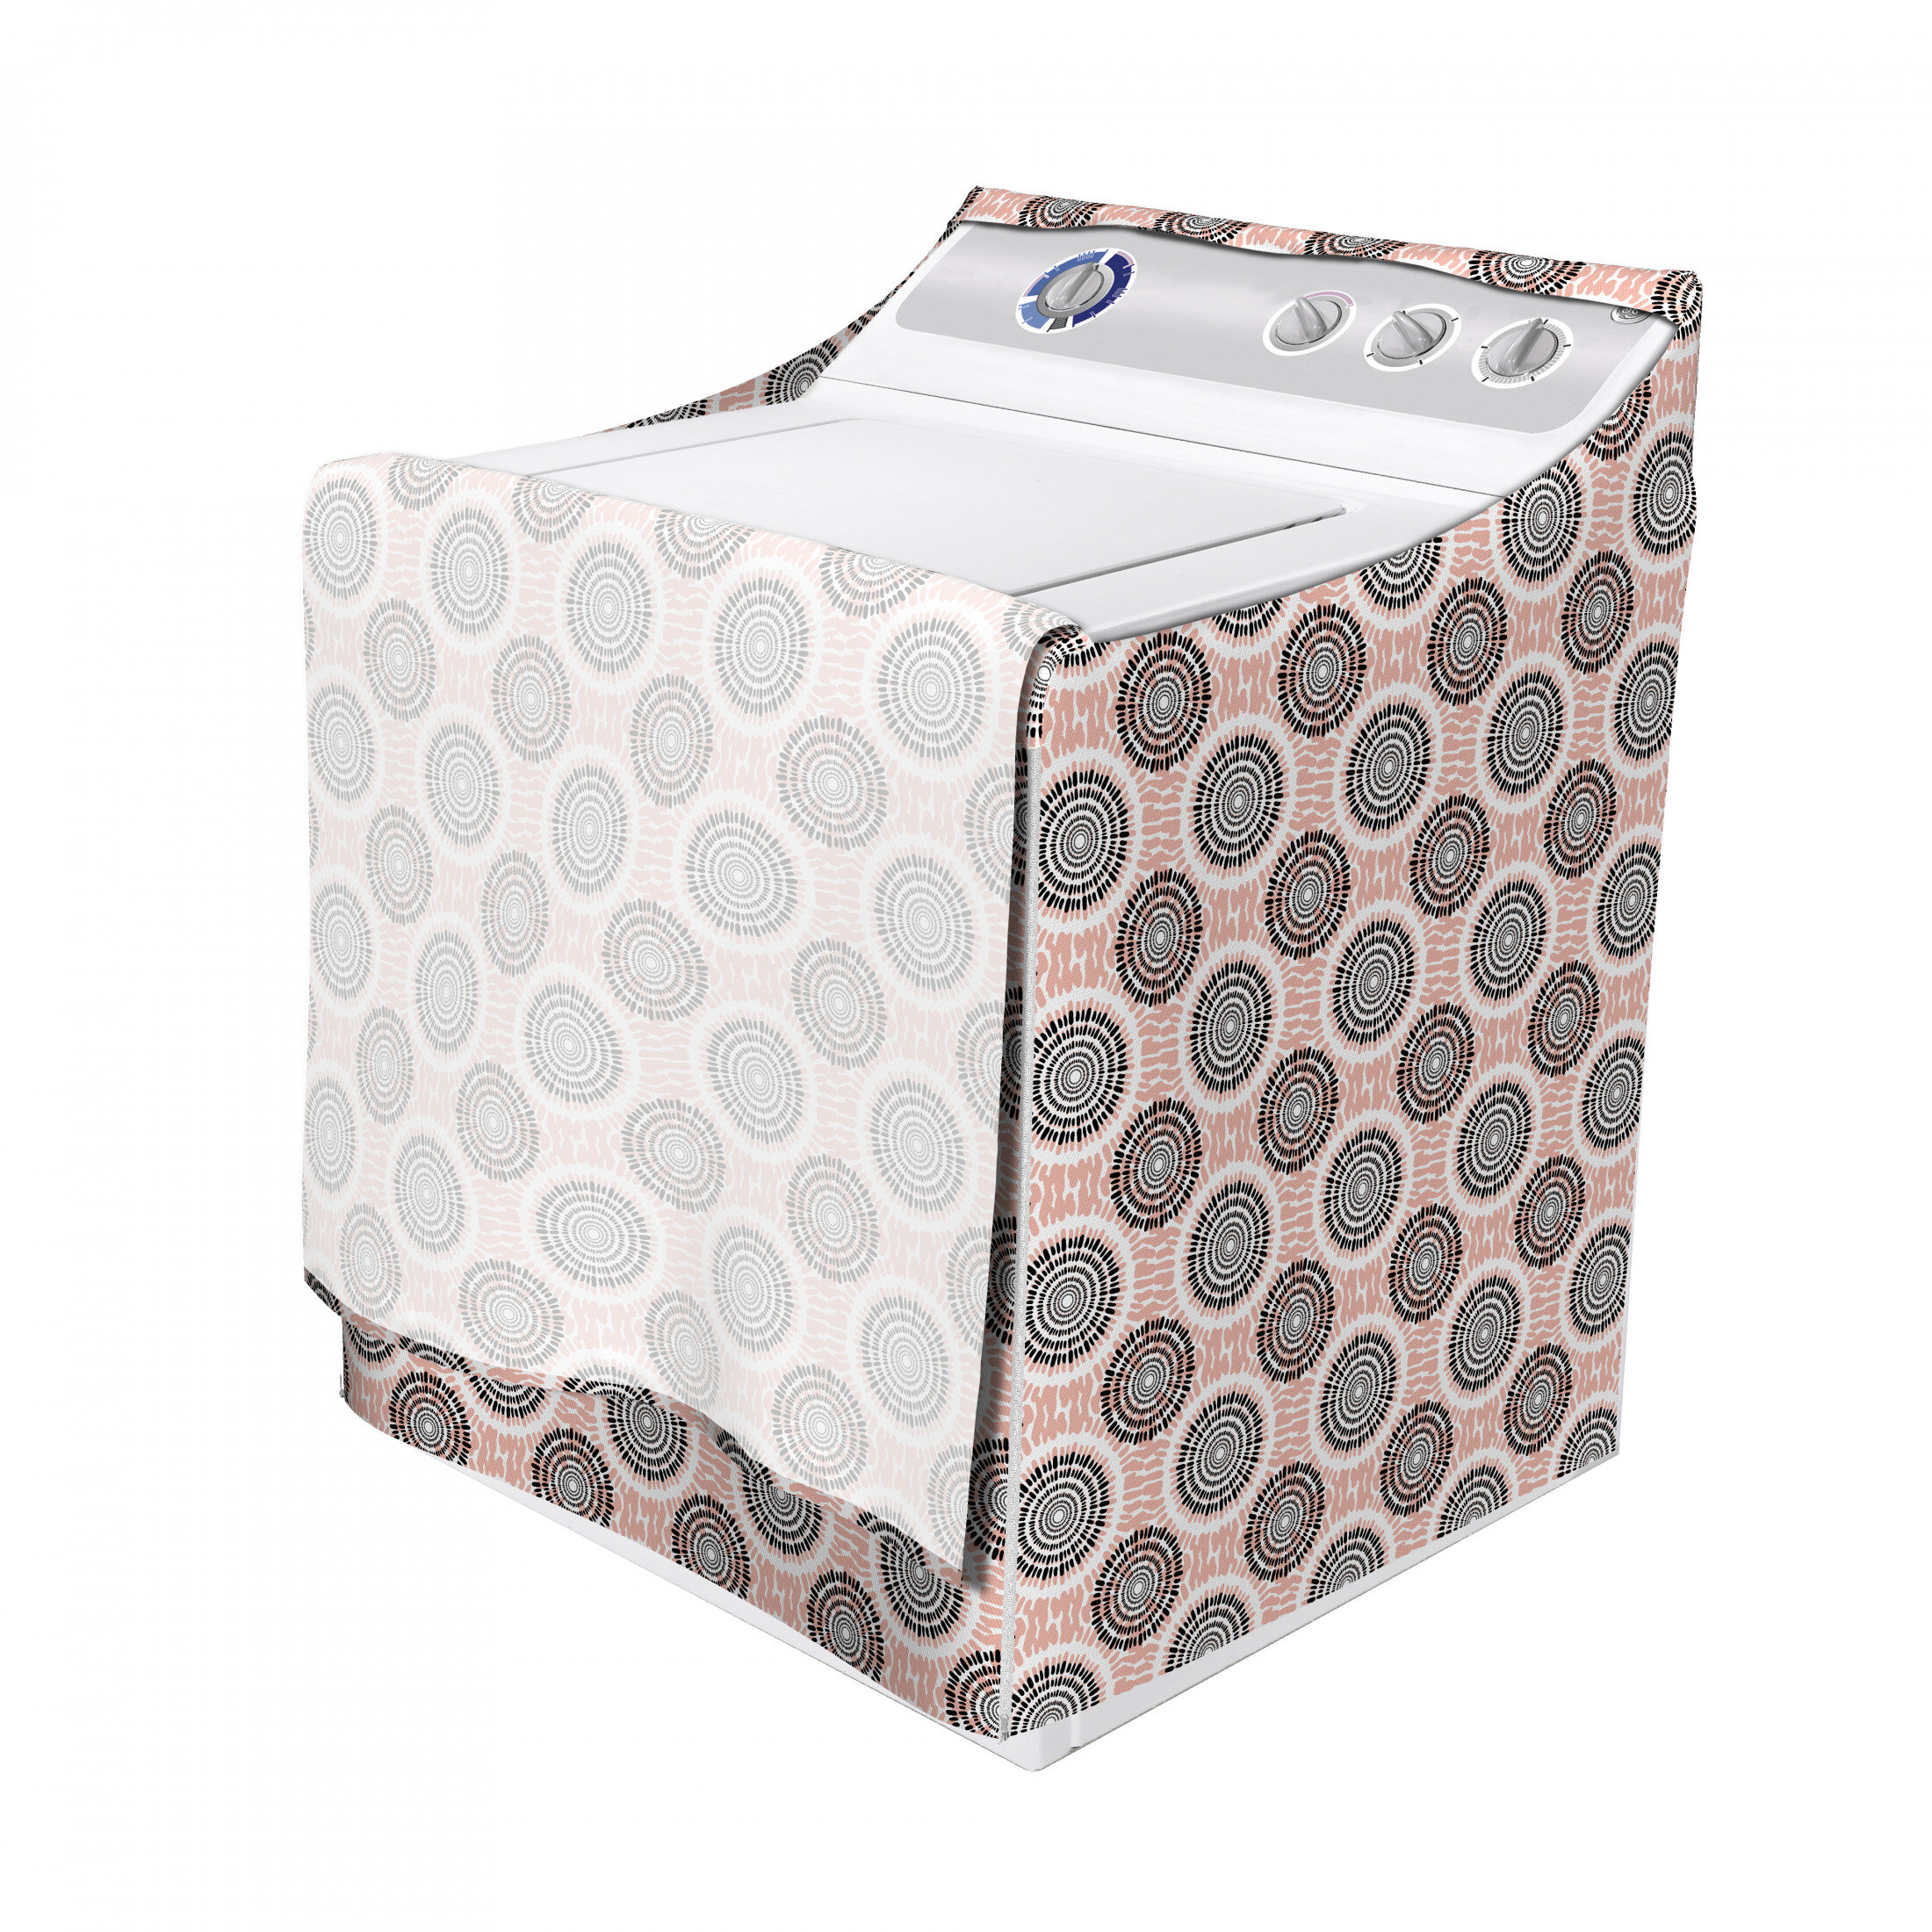 East Urban Home Symmetrical Circular Shapes Pattern Abstract Background Soft Color Image Print Washing Machine Cover Wayfair